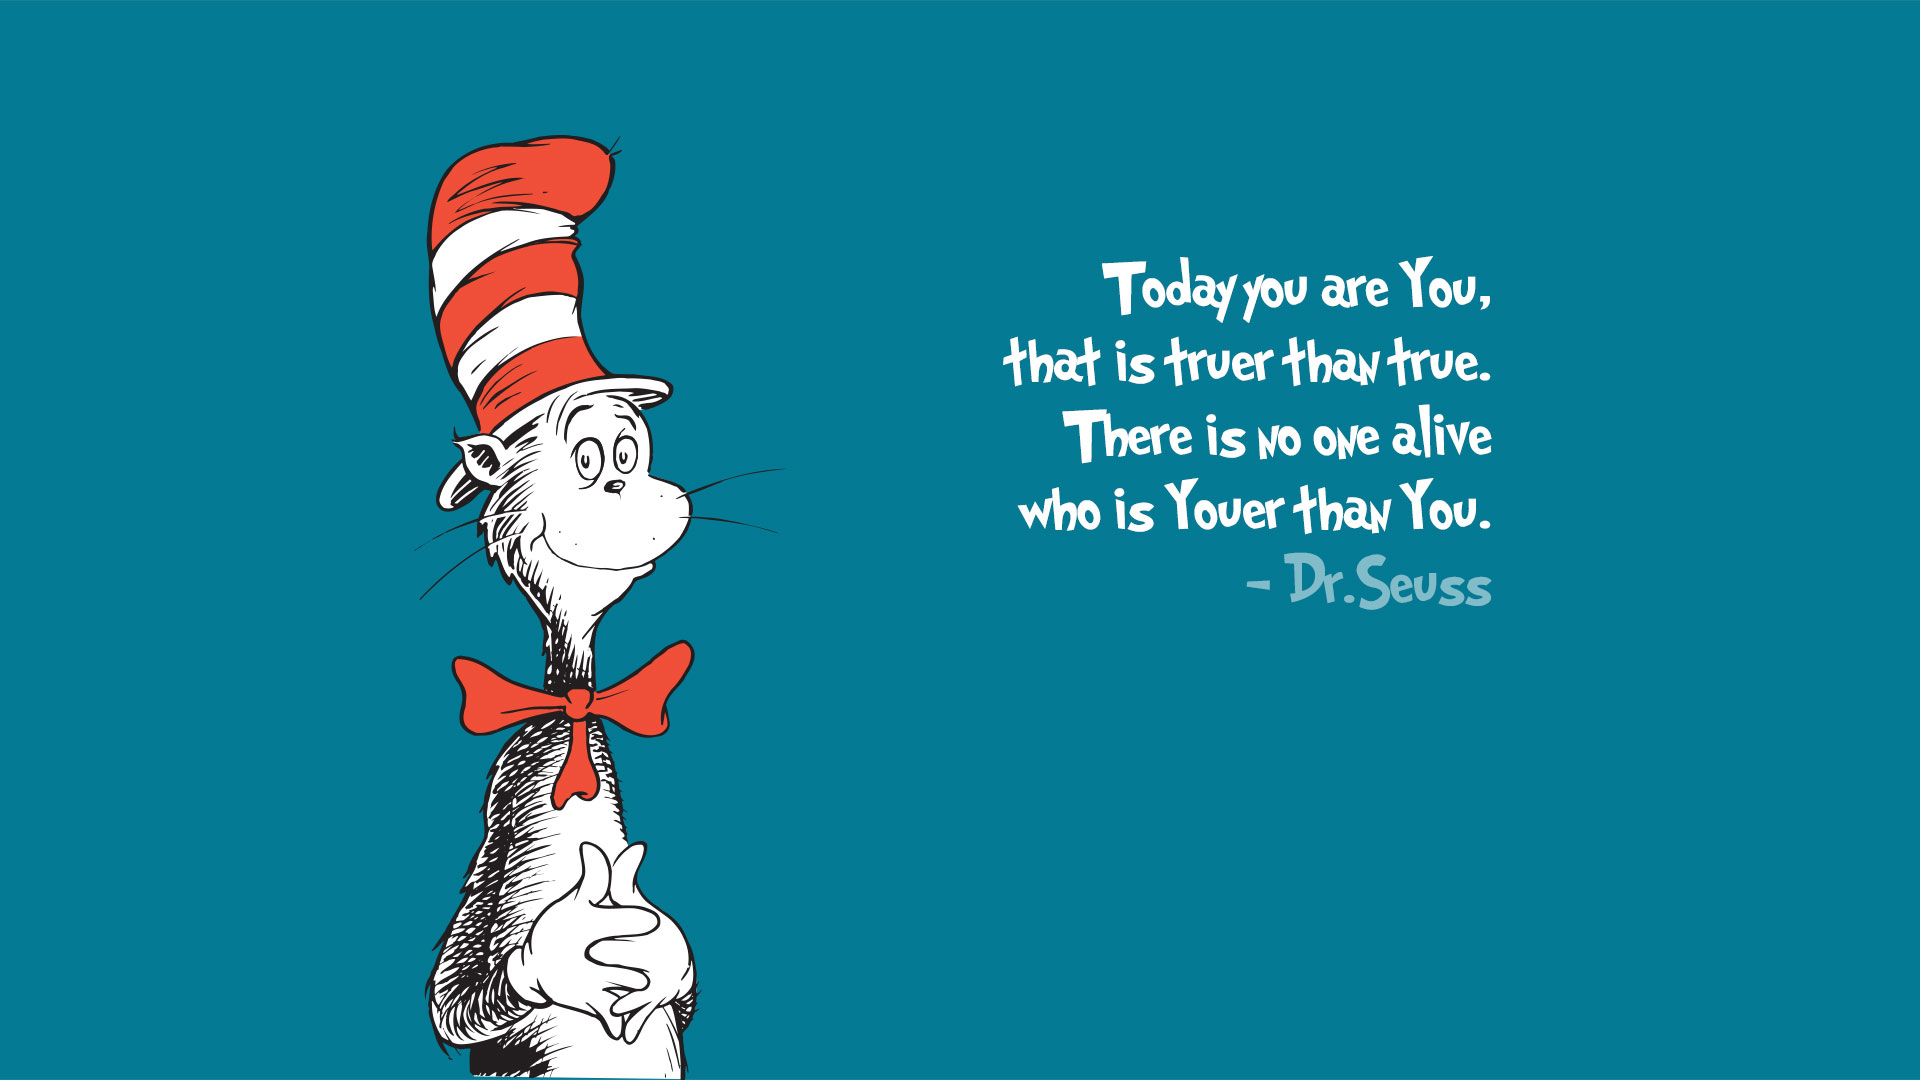 Dr Seuss Quotes Love Wallpaper Images amp Pictures   Becuo 1920x1080